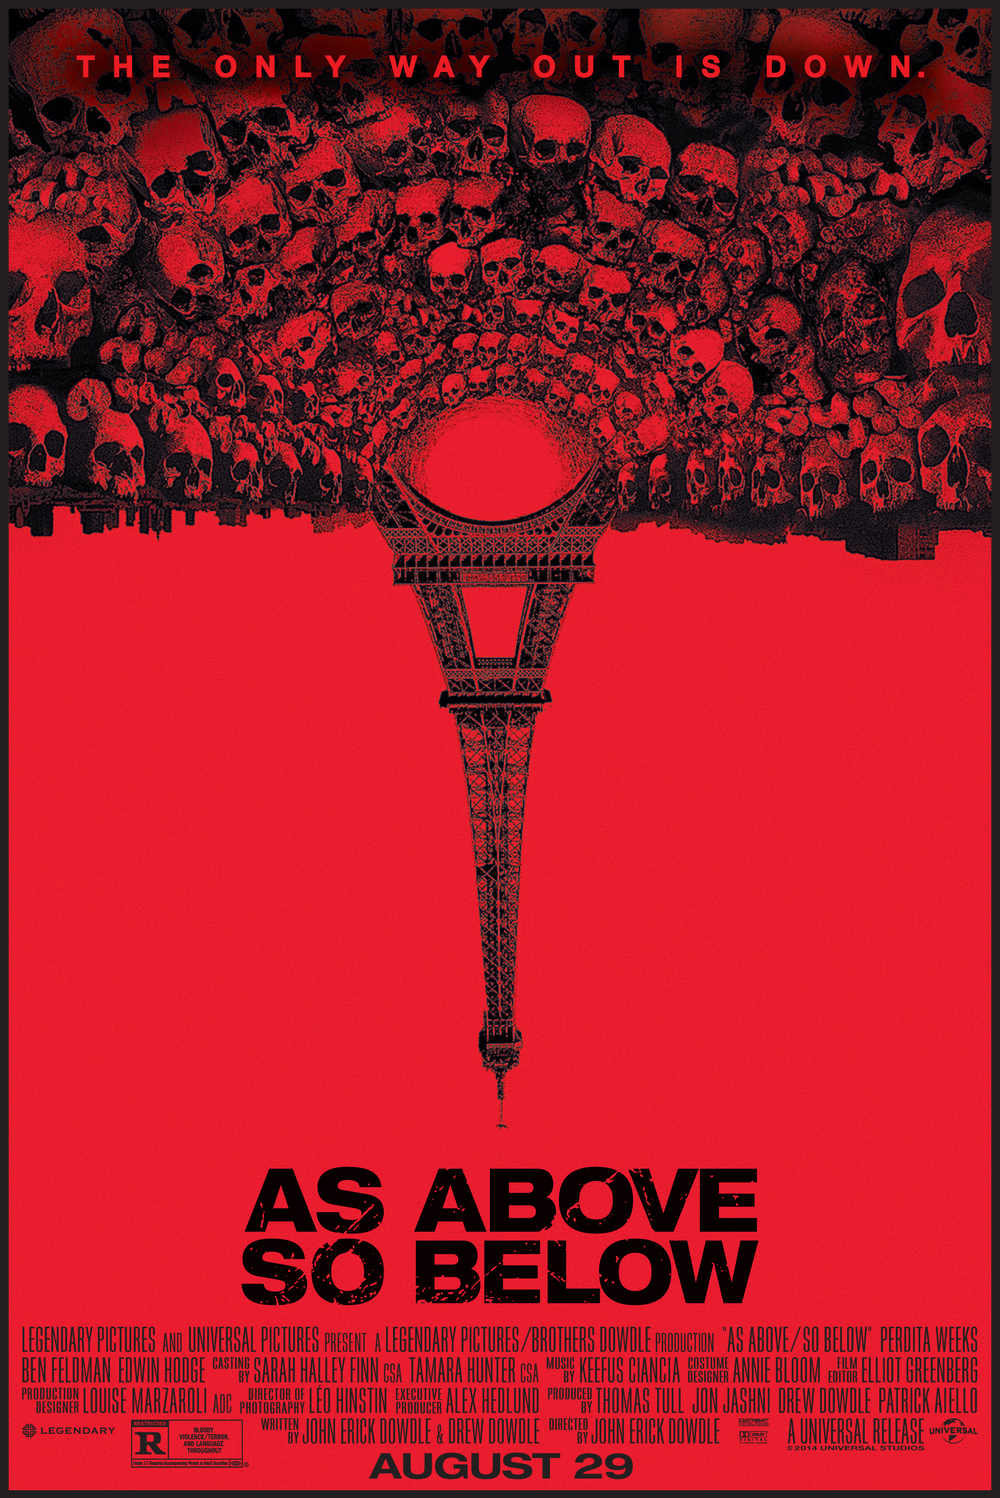 red-band-trailer-for-the-horror-thriller-as-above-so-below